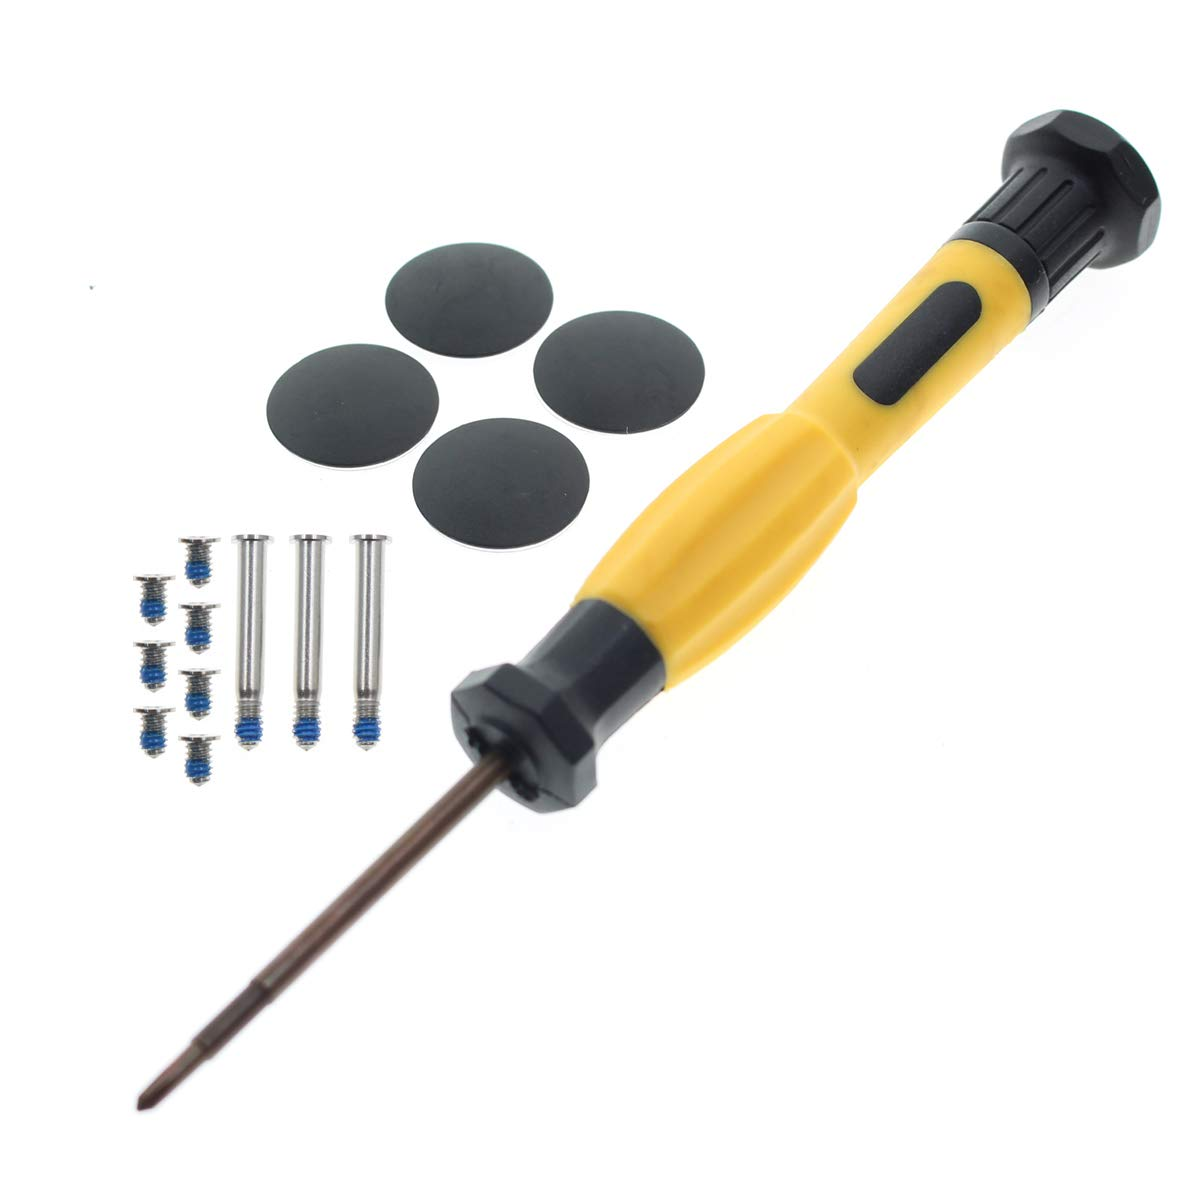 Hammer with bottom screw driver